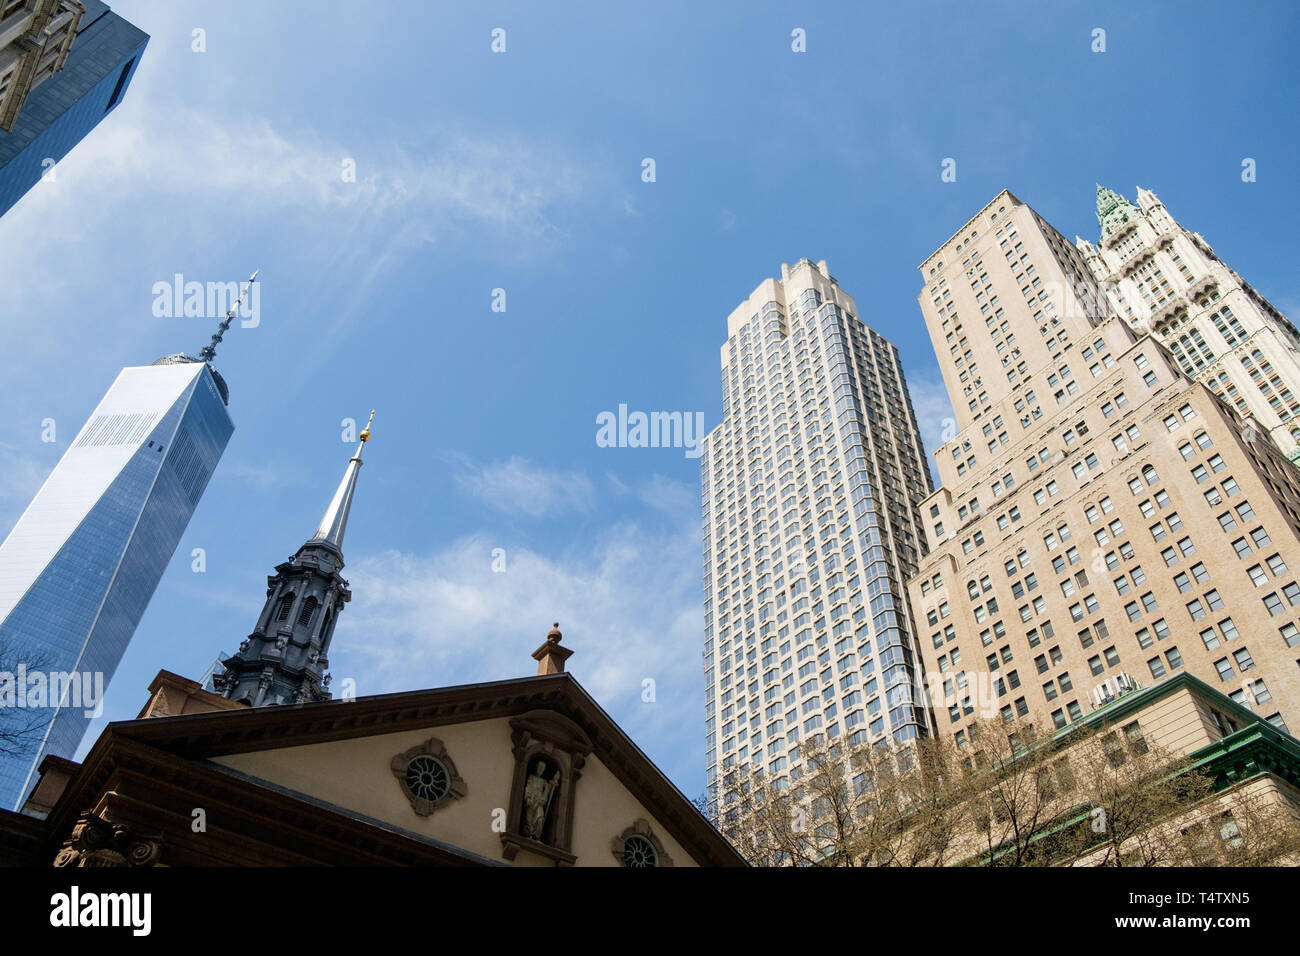 Looking up at St. Paul's Chapel Trinity Church, One World Trade, 225 Broadway and The Woolworth Building in downtown Manhattan. - Stock Image